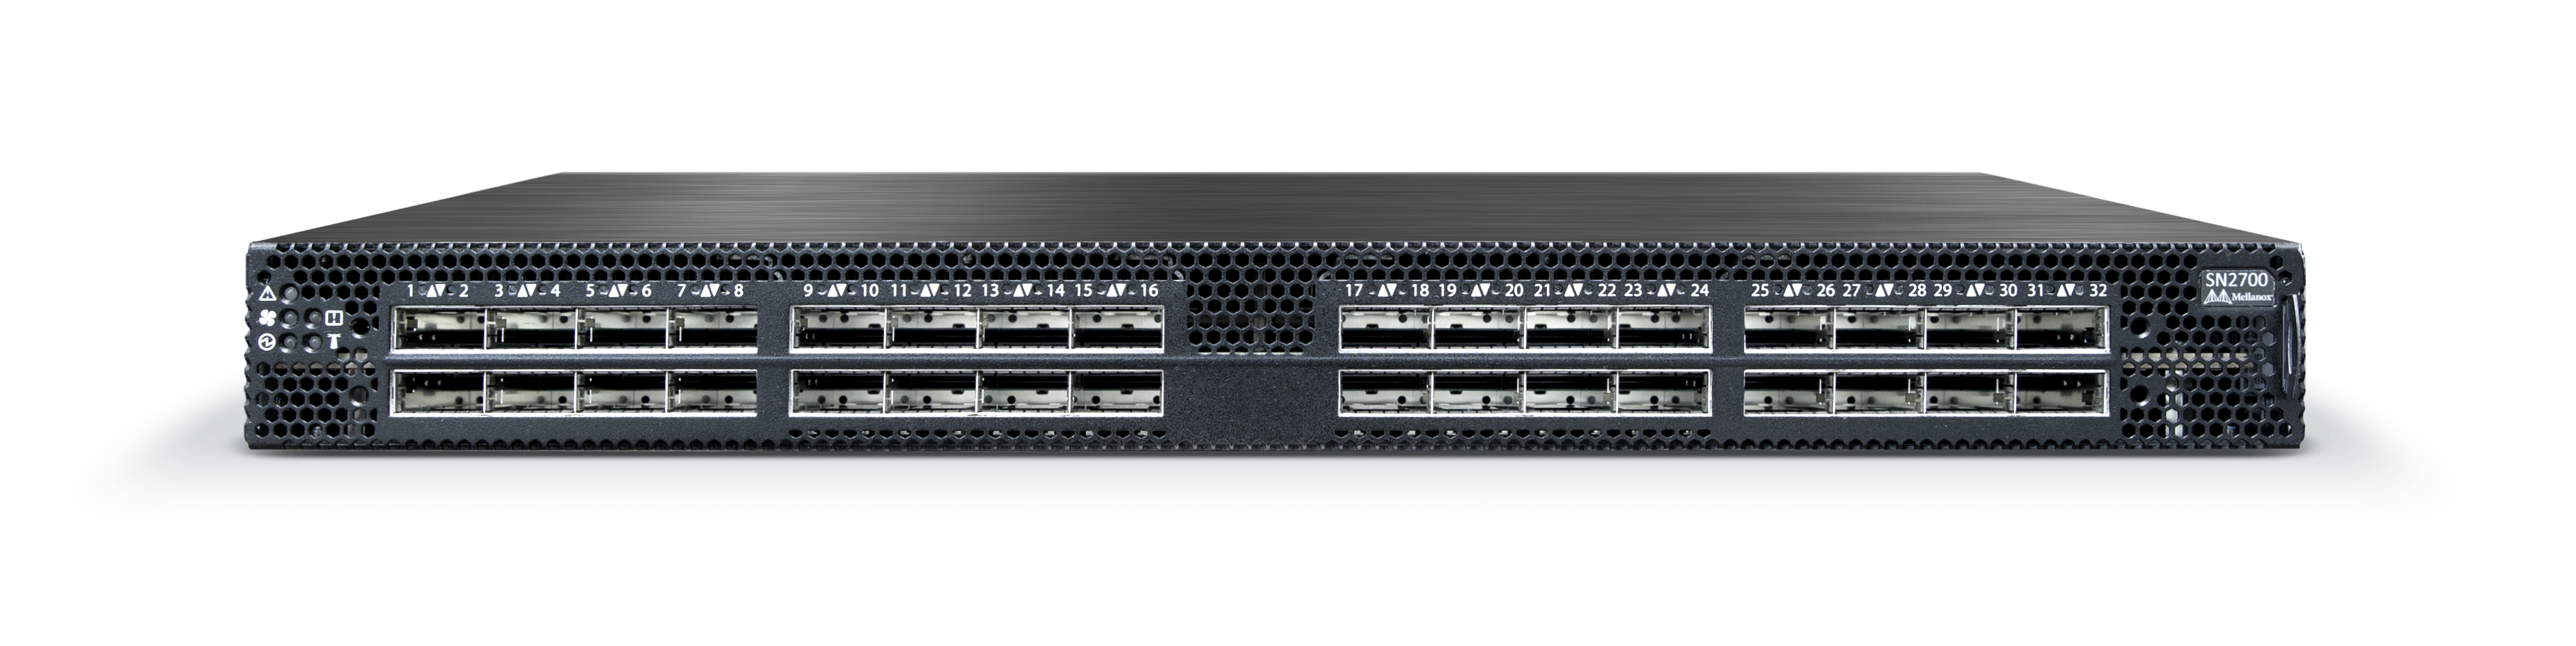 Mellanox's SN2700 32 port 100Gb/s Ethernet switch